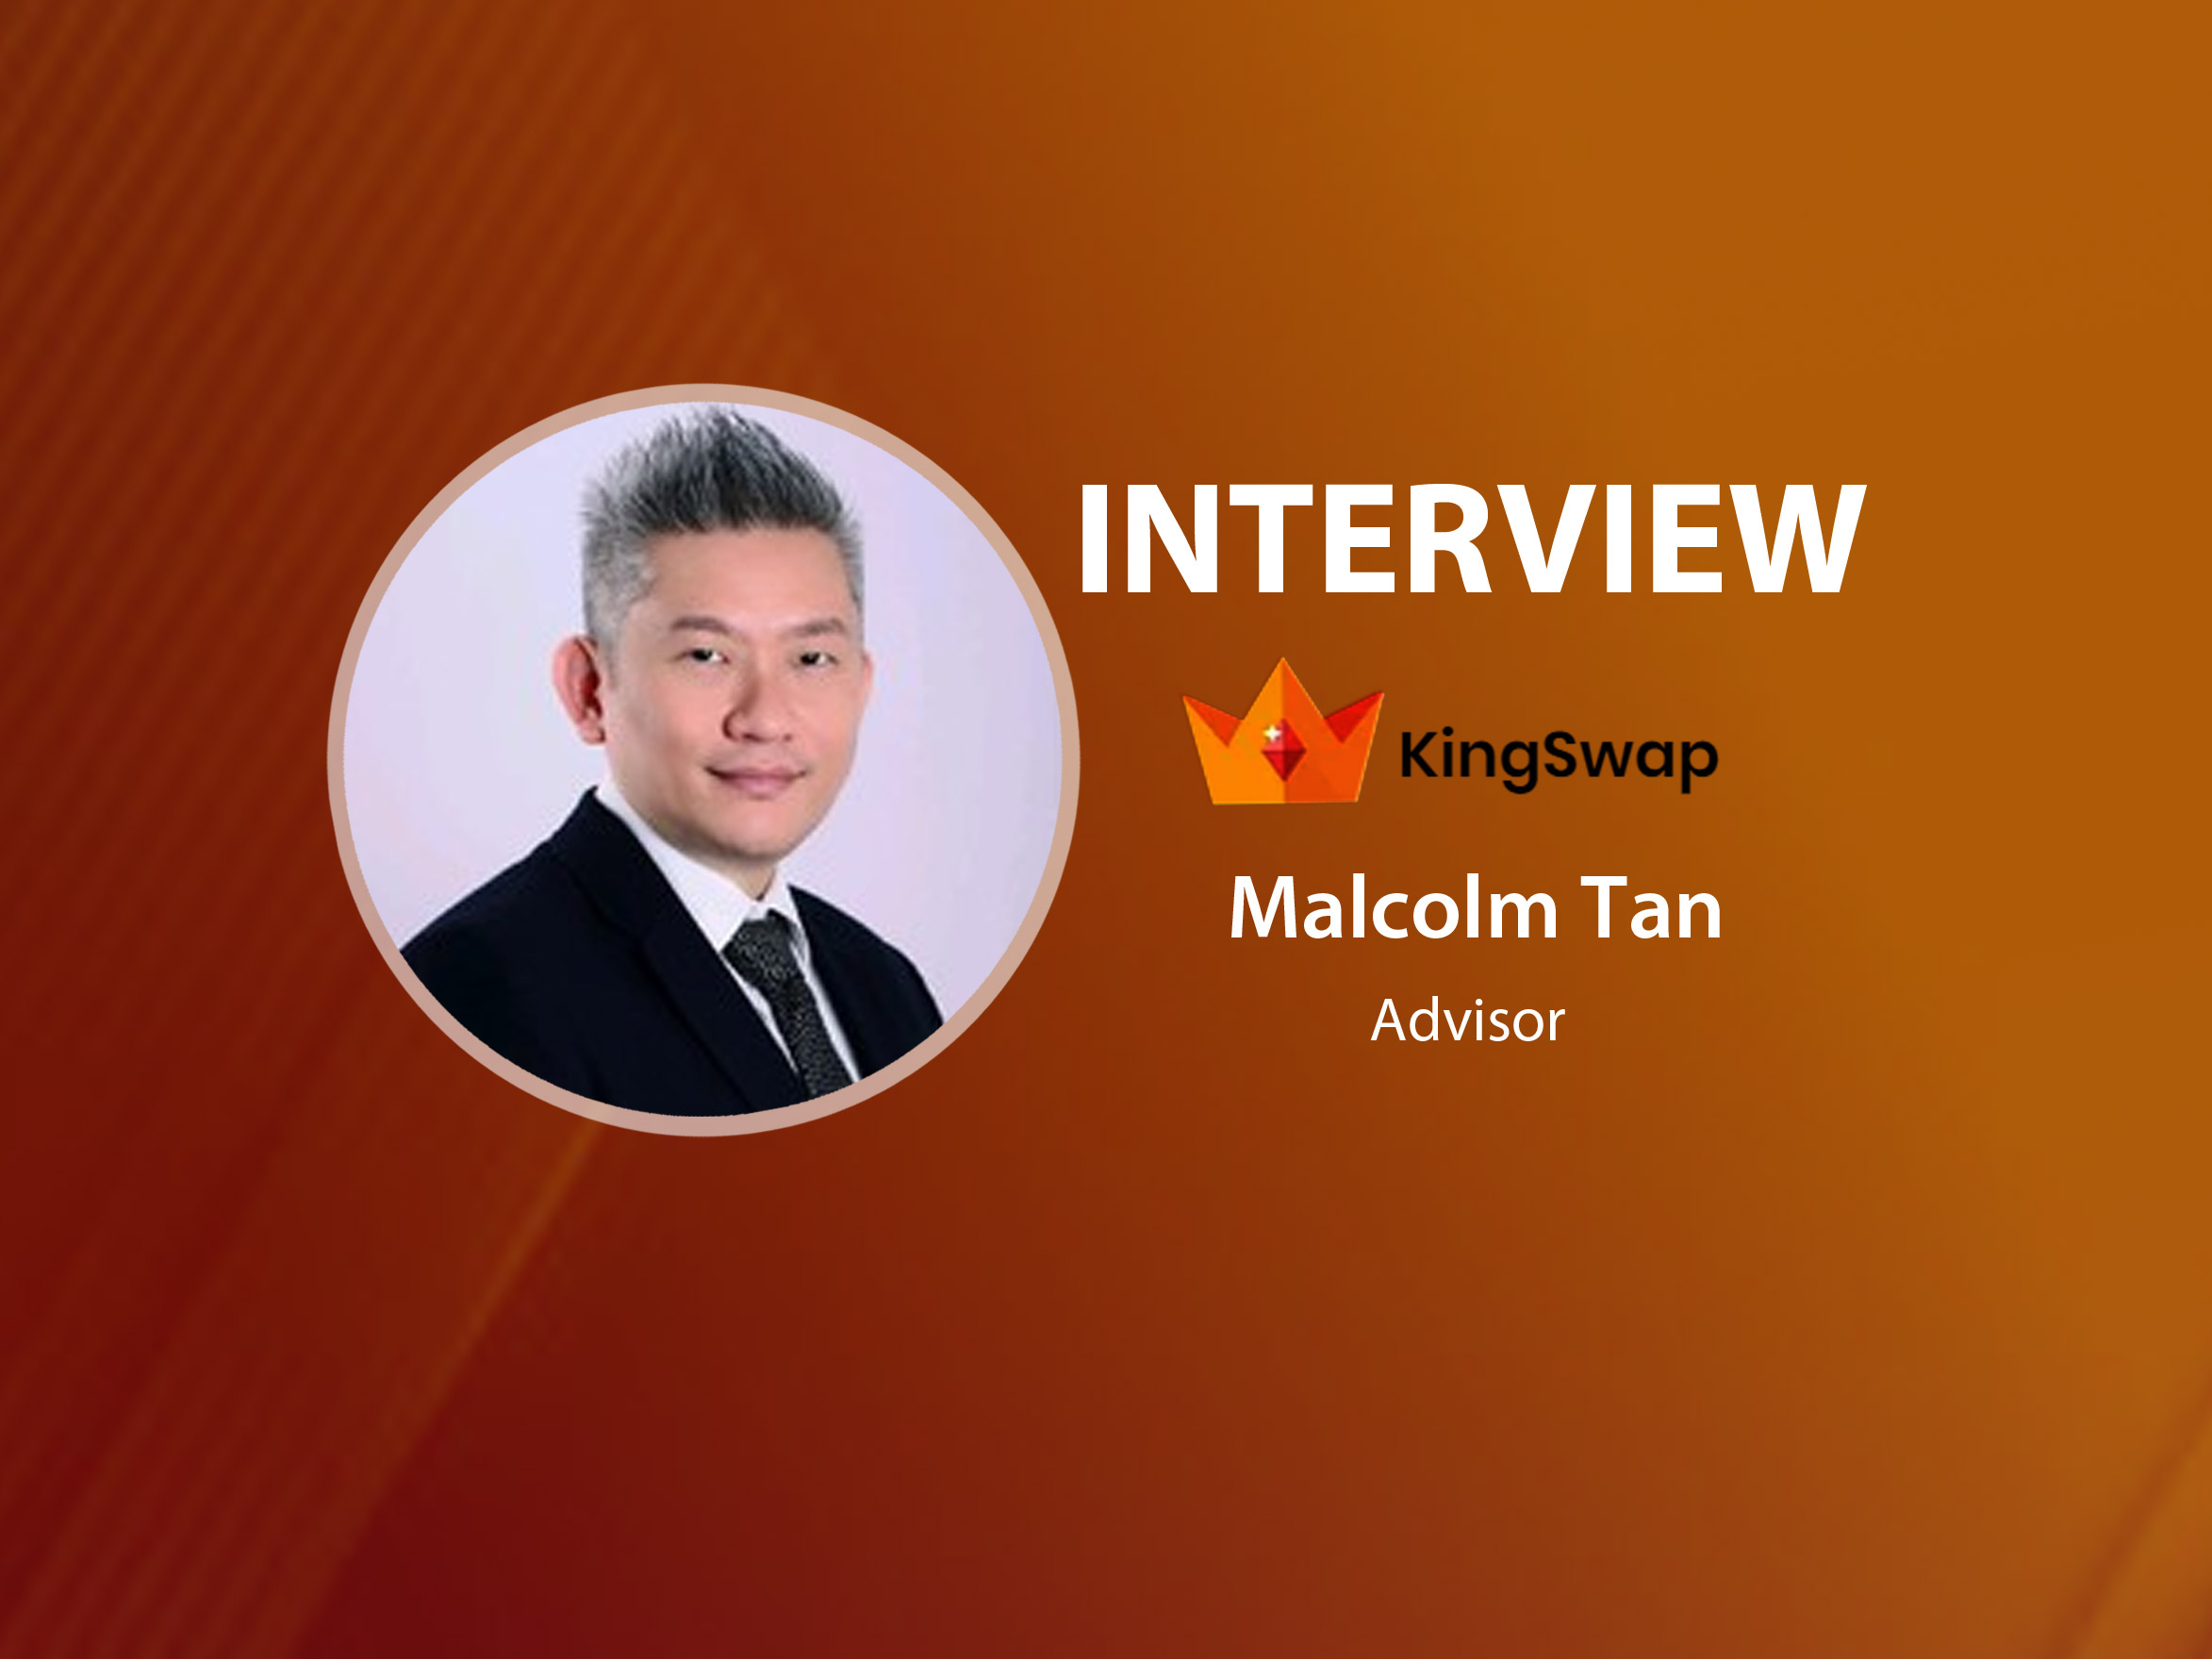 GlobalFintechSeries Interview with Malcolm Tan, Advisor at KingSwap